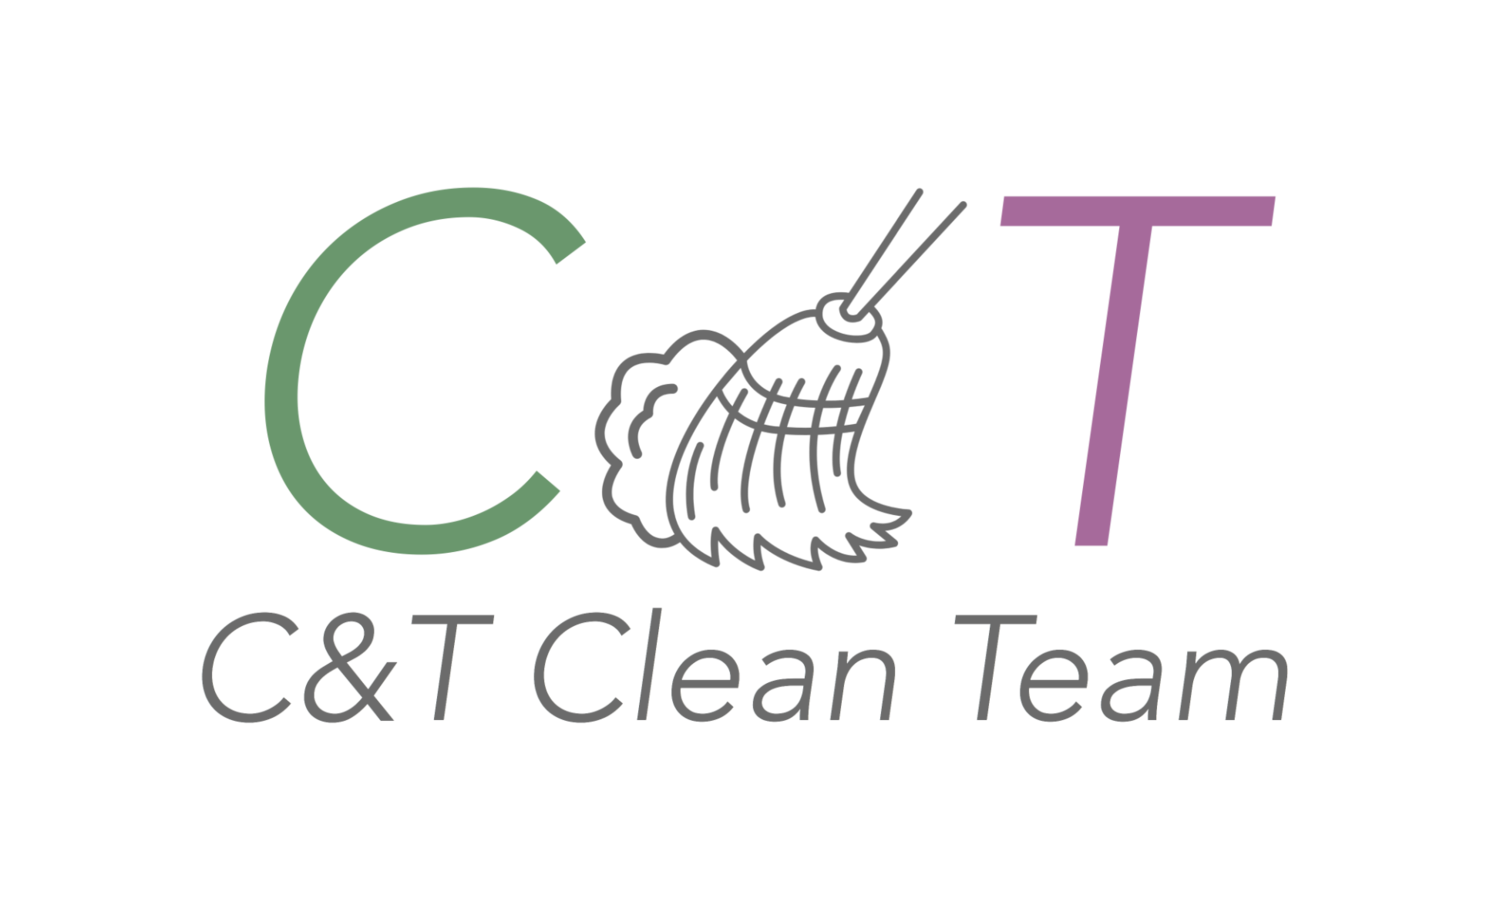 C&T Clean Team, LLC